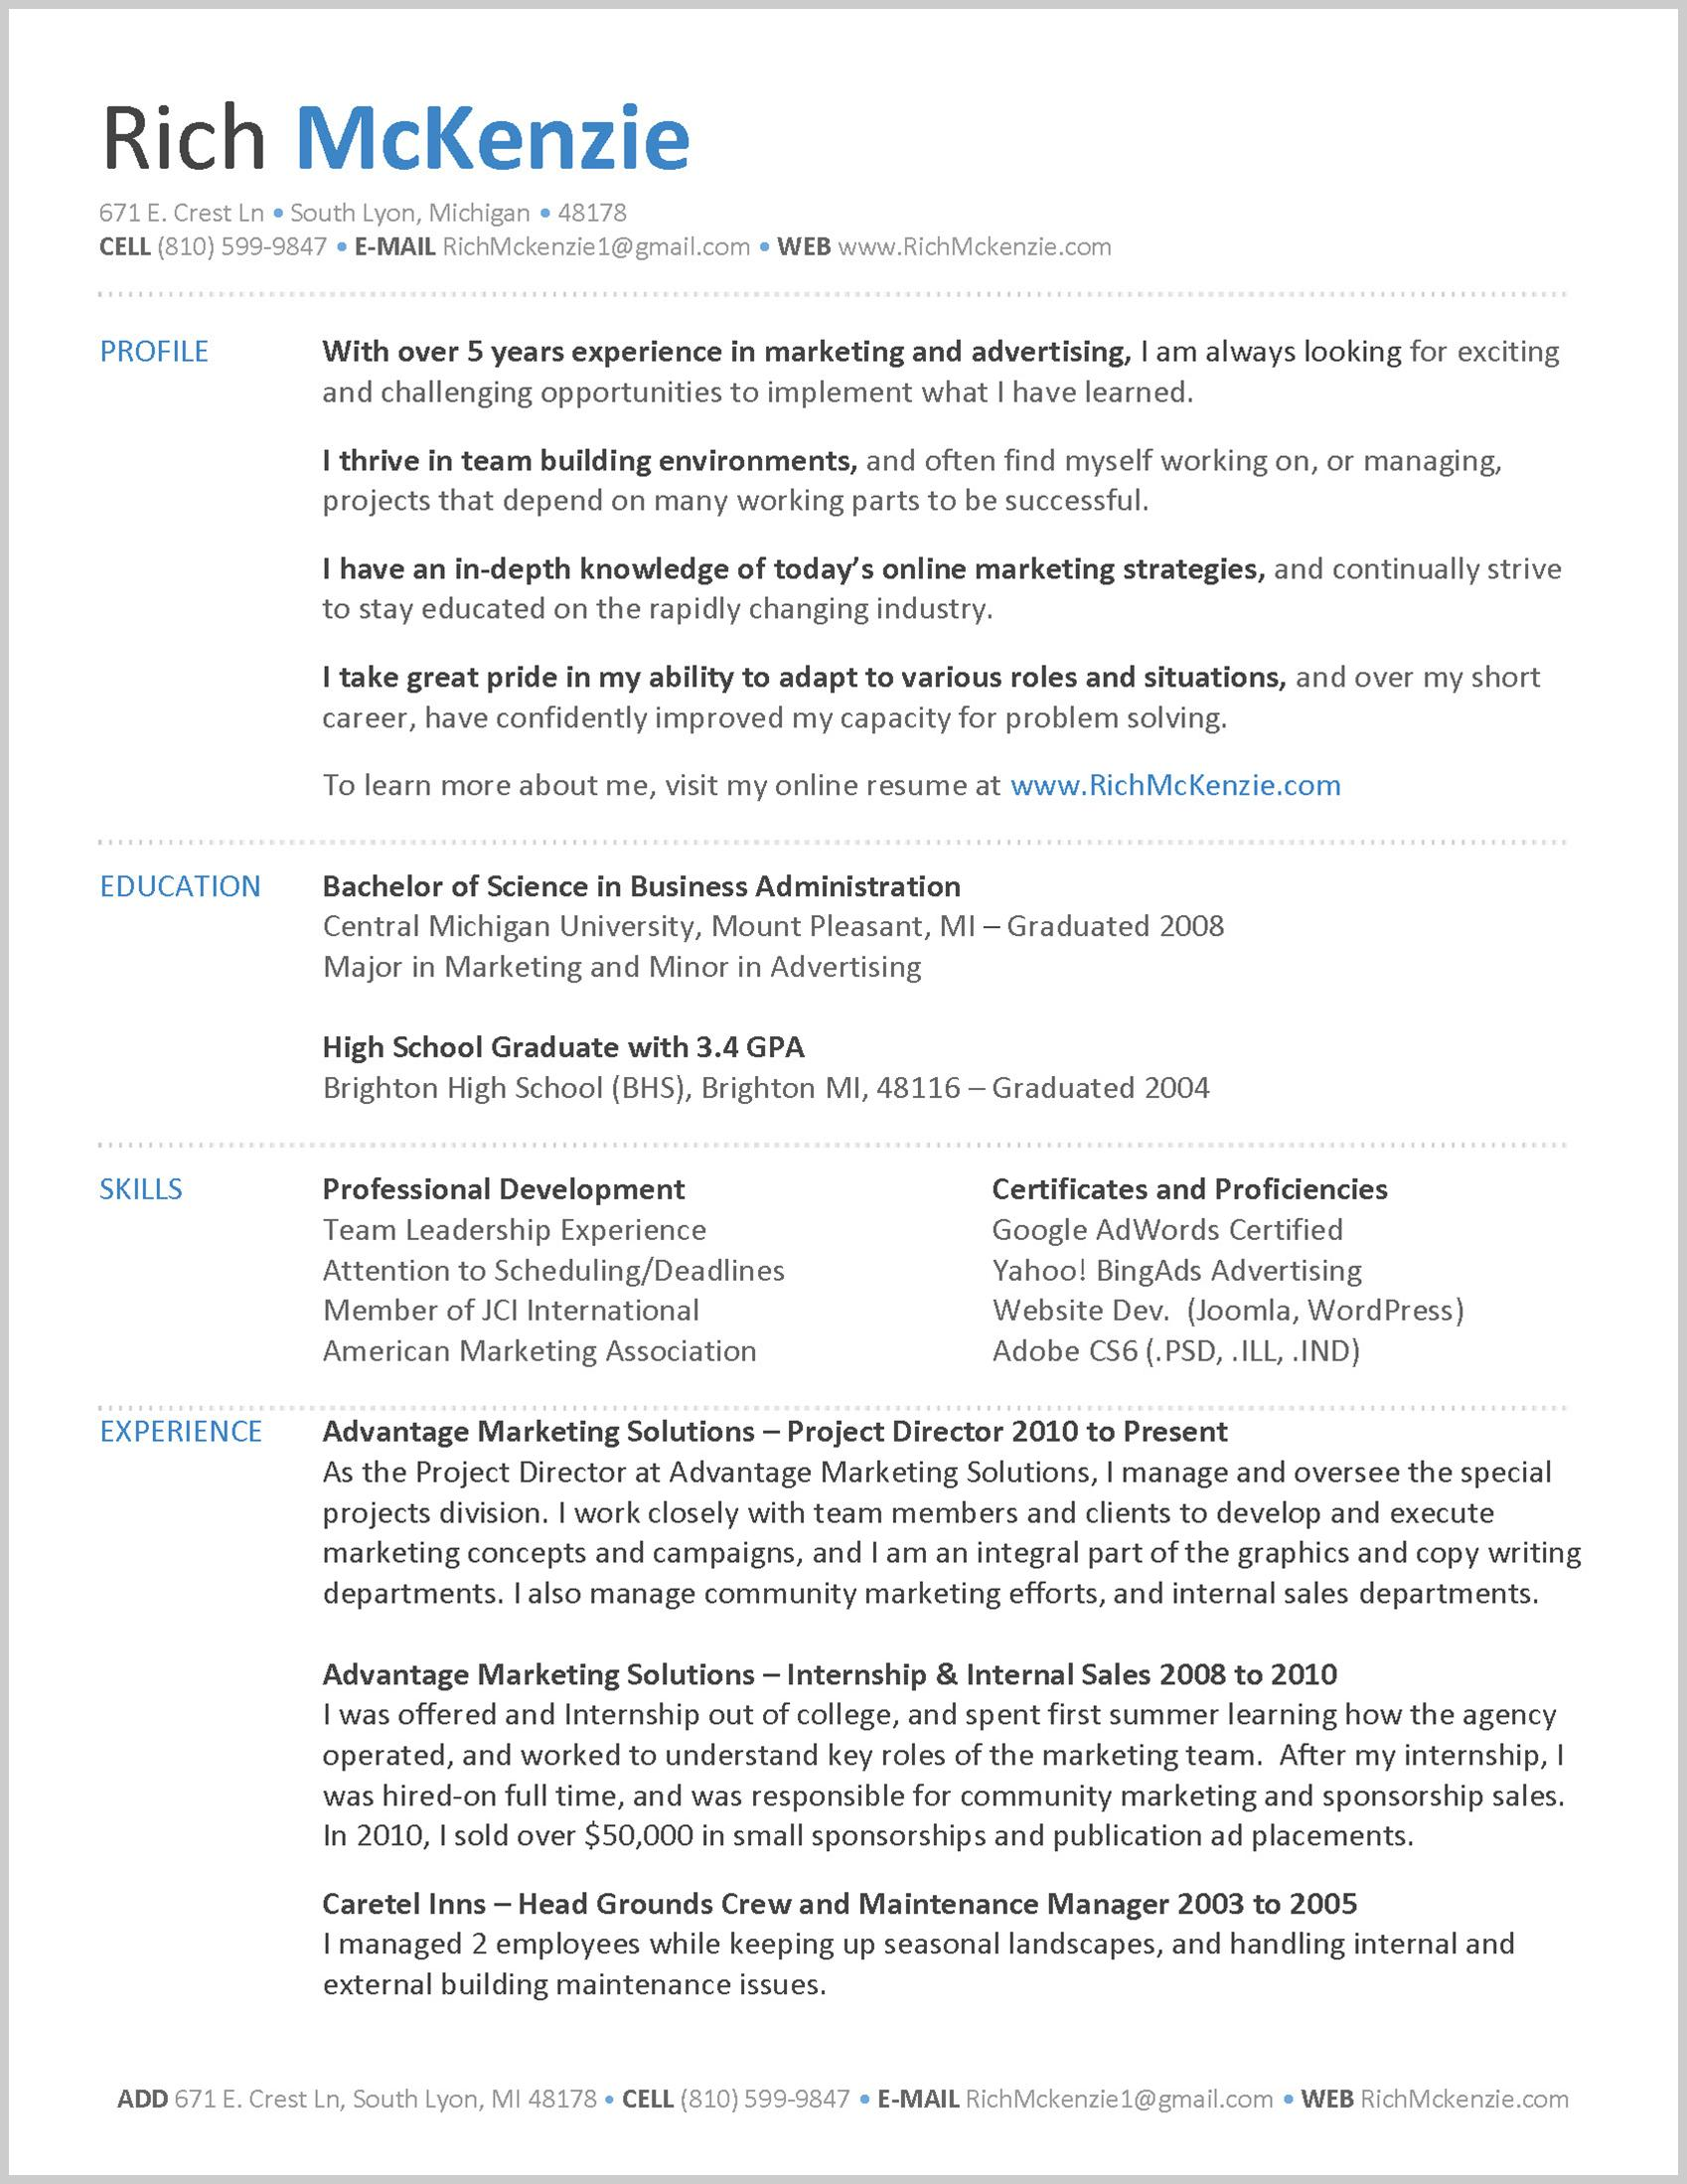 resume easyjob builder template best resume template resume easyjob builder template best resume builder websites site online best creator resume builder